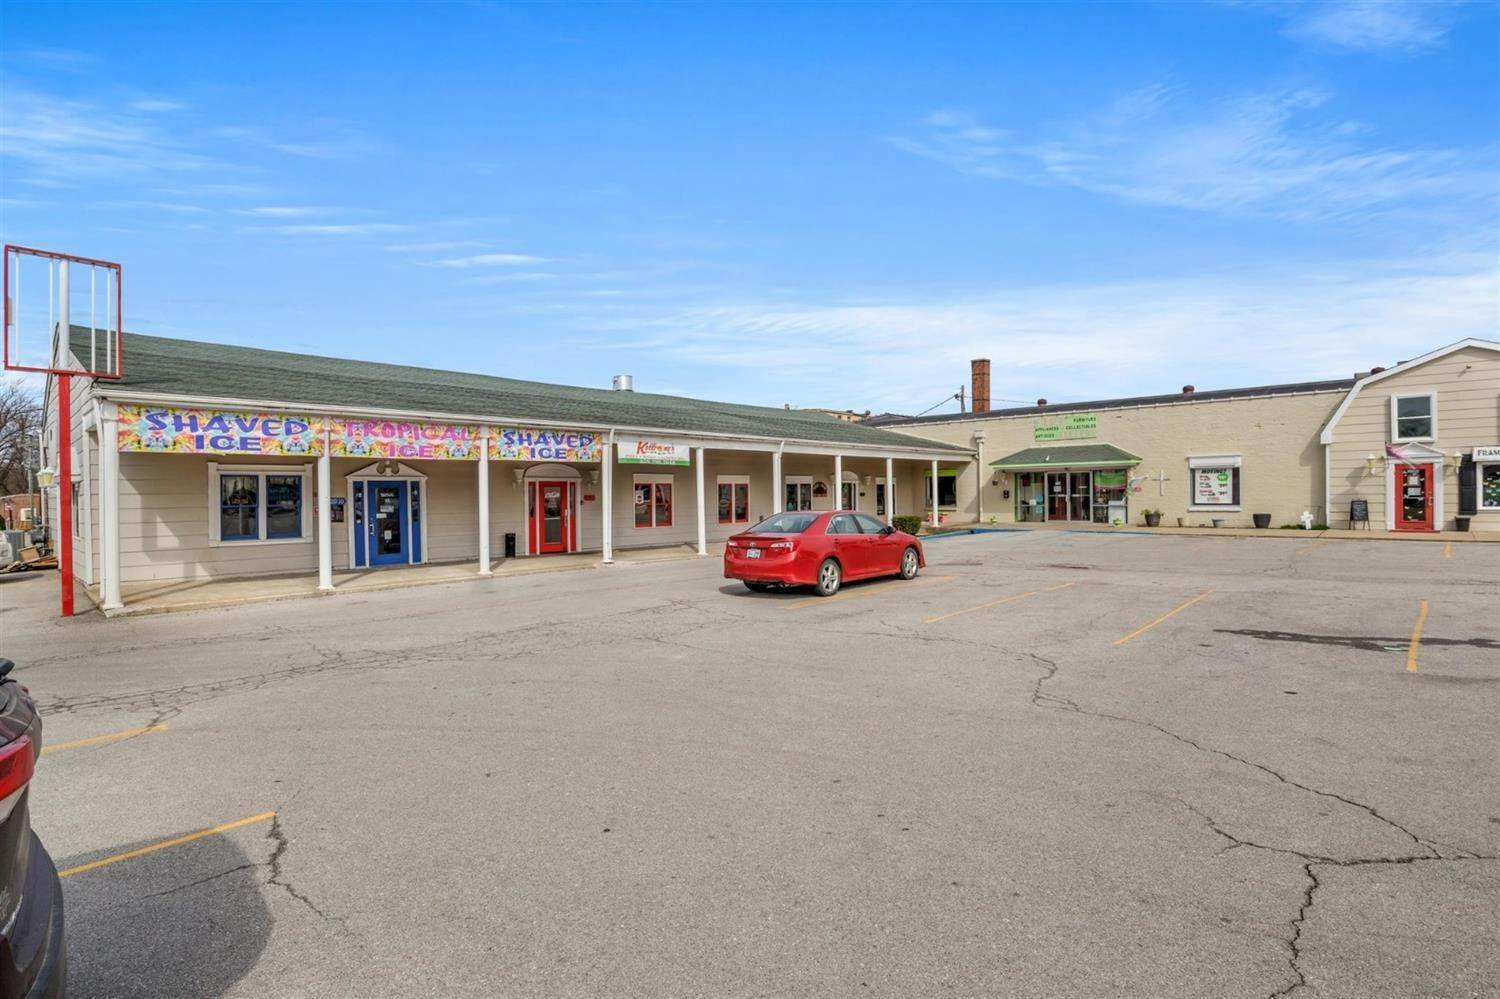 Commercial / Industrial for Sale at 219 South Walnut Cynthiana, Kentucky 41031 United States